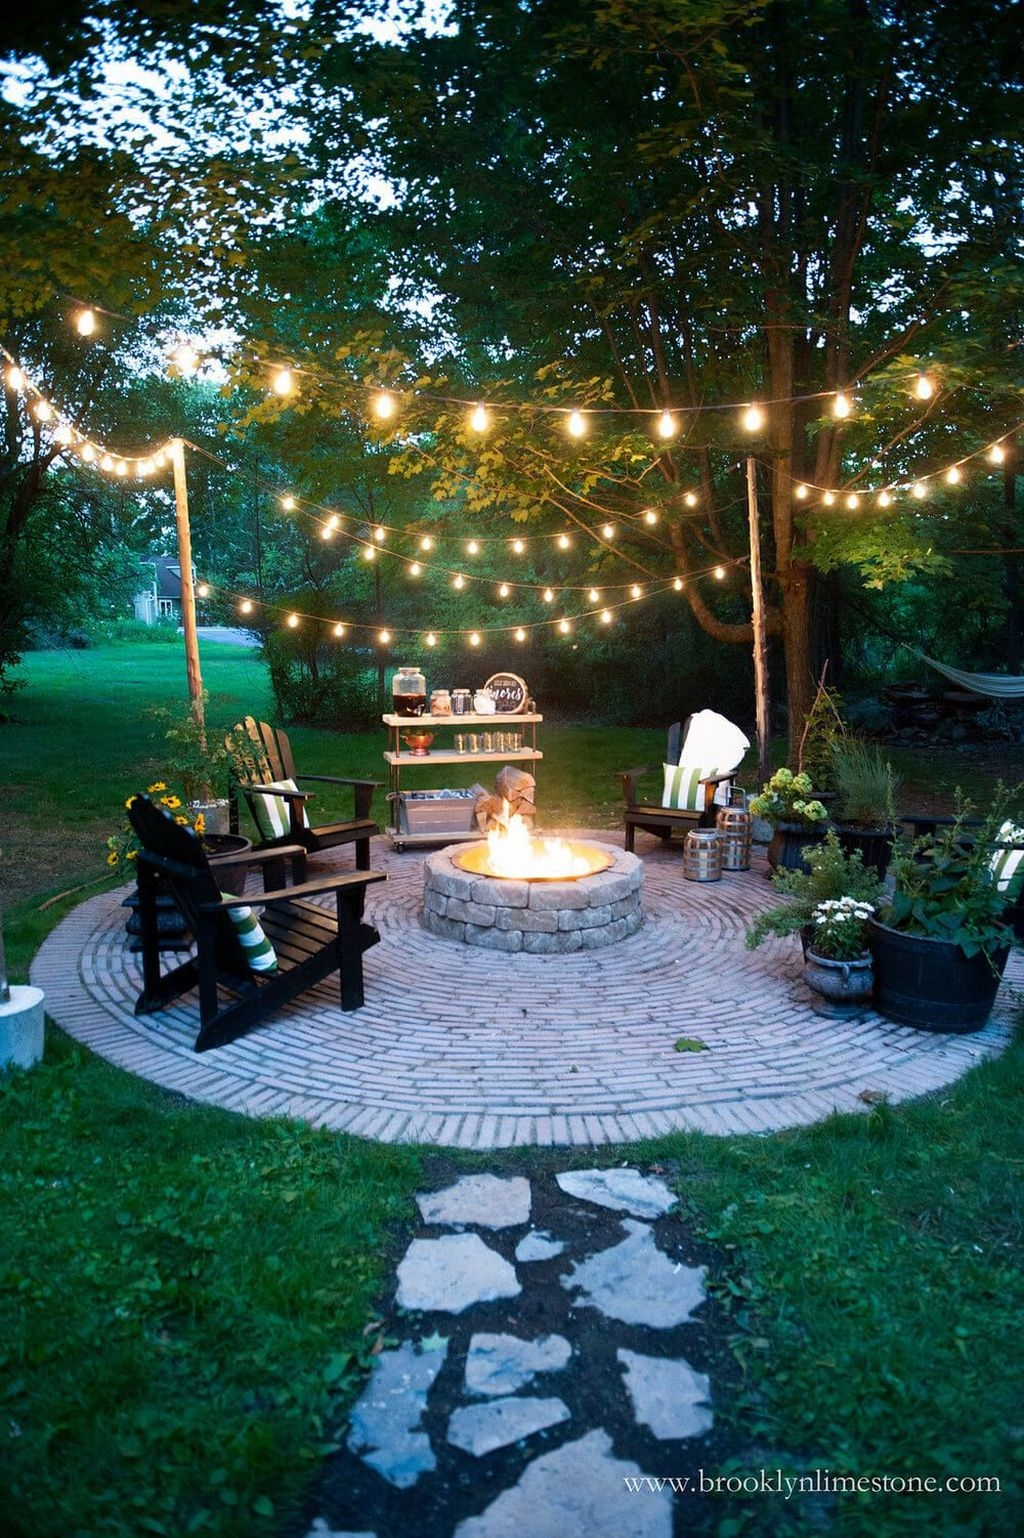 Inspiring Outdoor Lighting Ideas For Your Garden 19